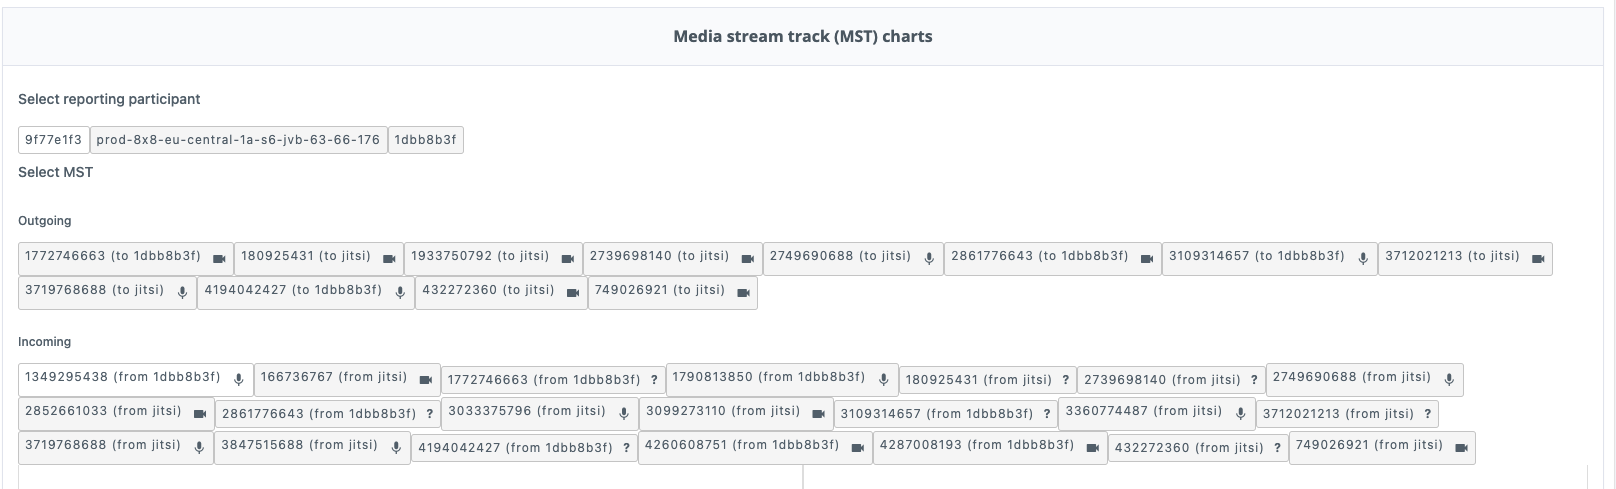 MST charts show Servers and loads in realtime